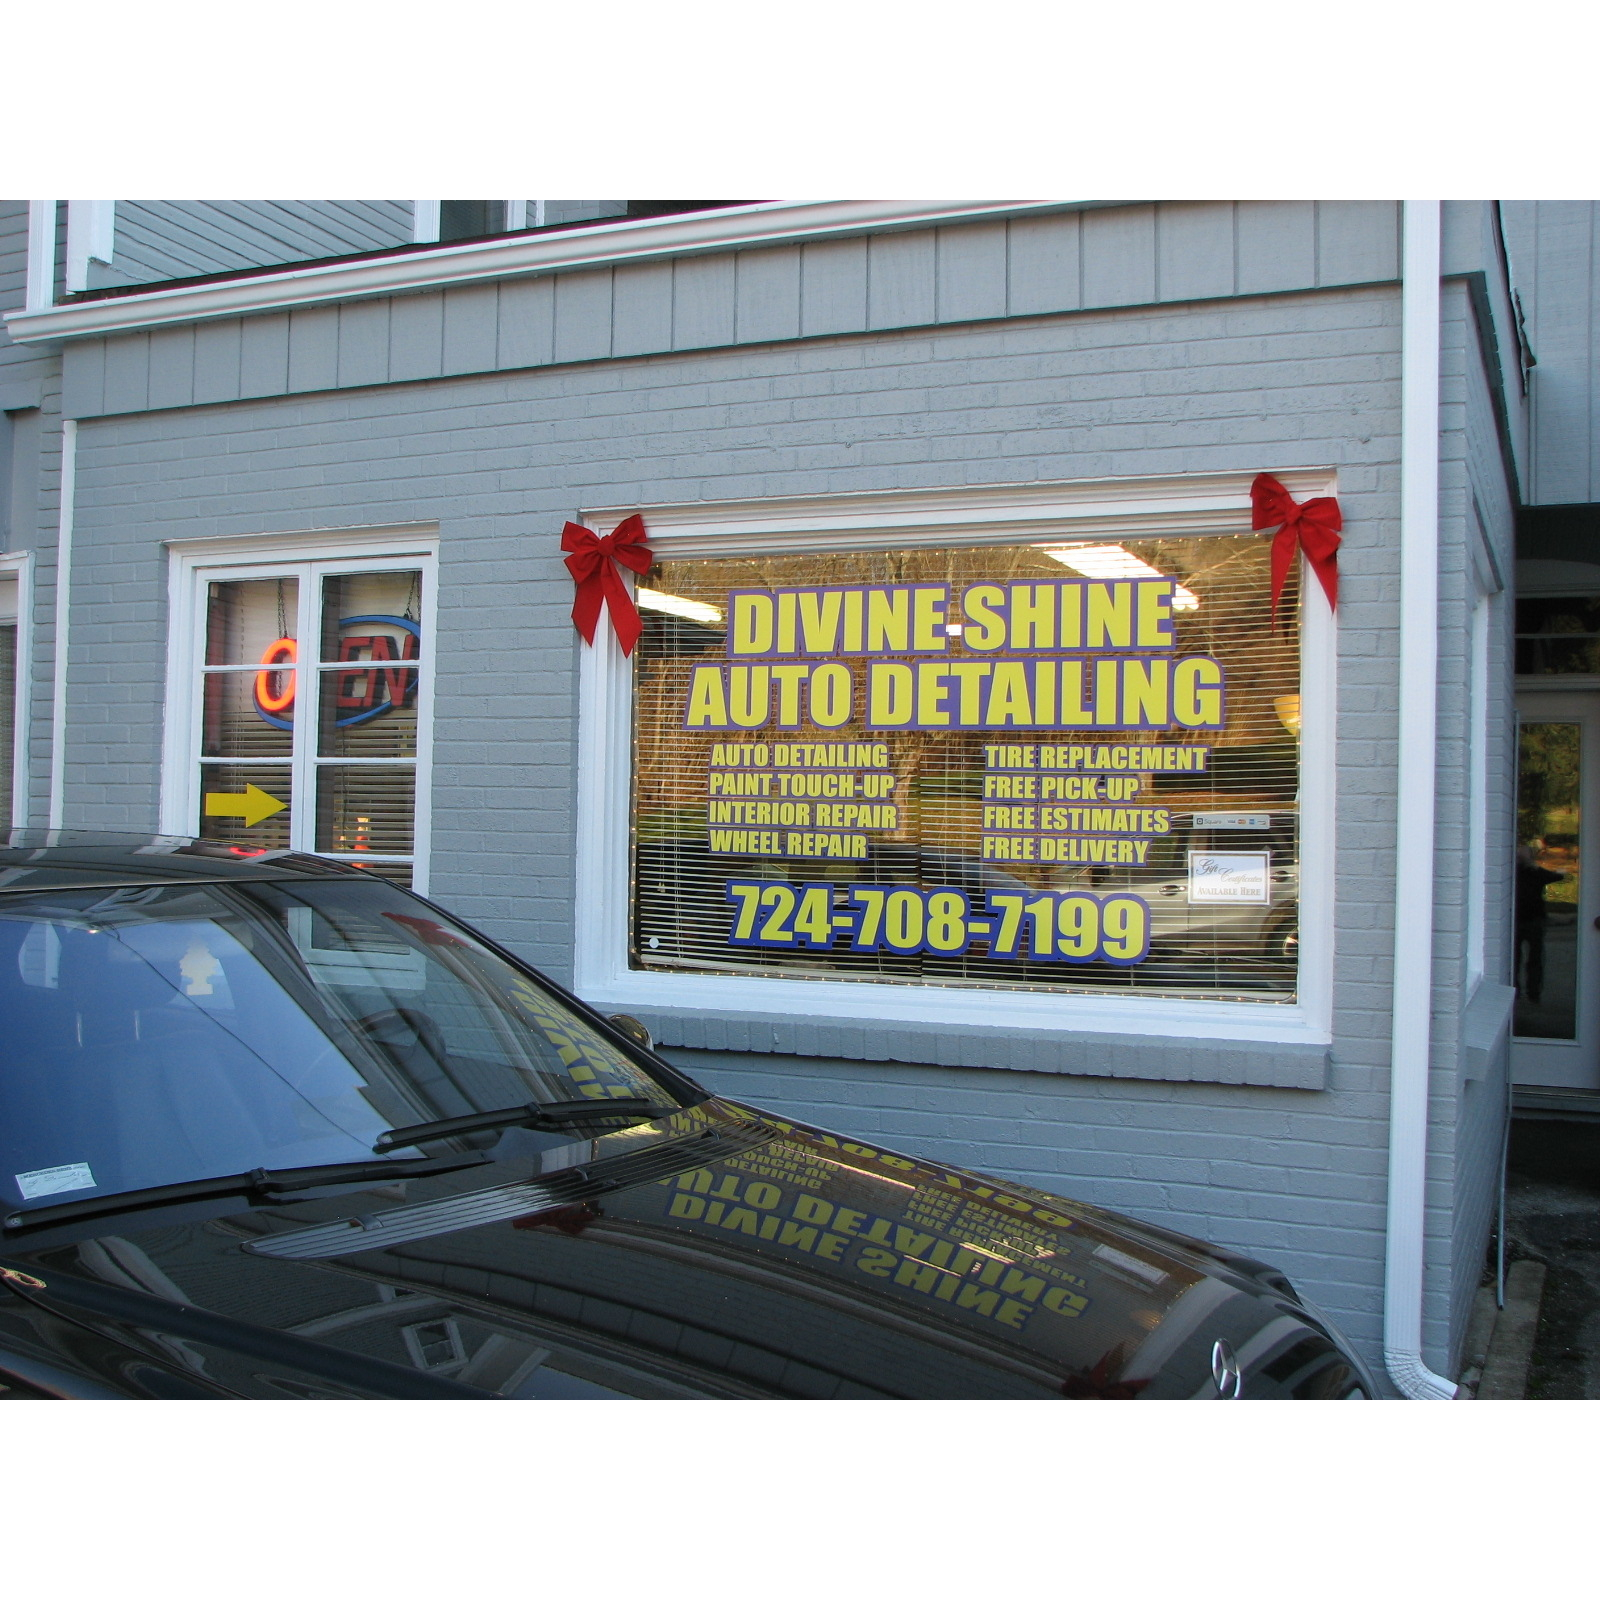 The Car Wash Detailing North Randall Ohio: DIVINE SHINE AUTO DETAILING In Greensburg, PA